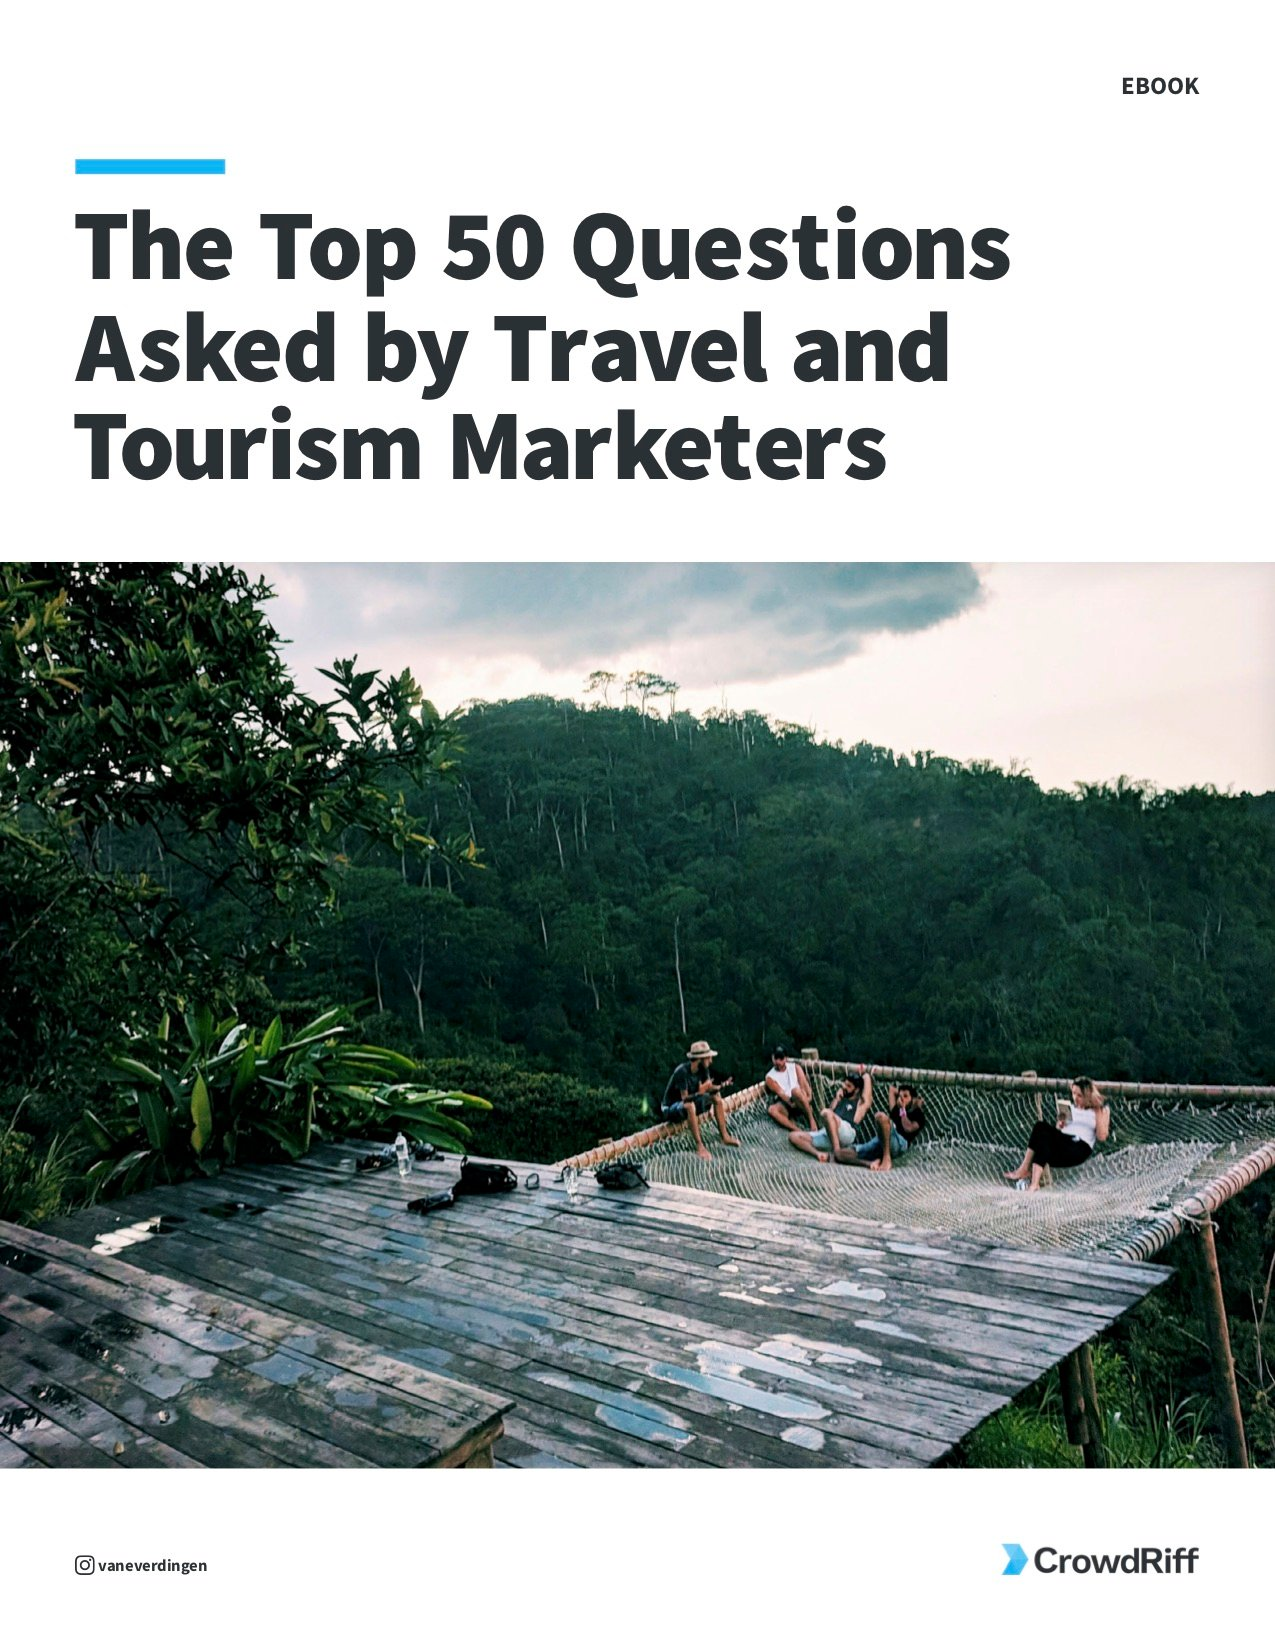 The Top 50 Questions Asked by Travel & Tourism Marketers